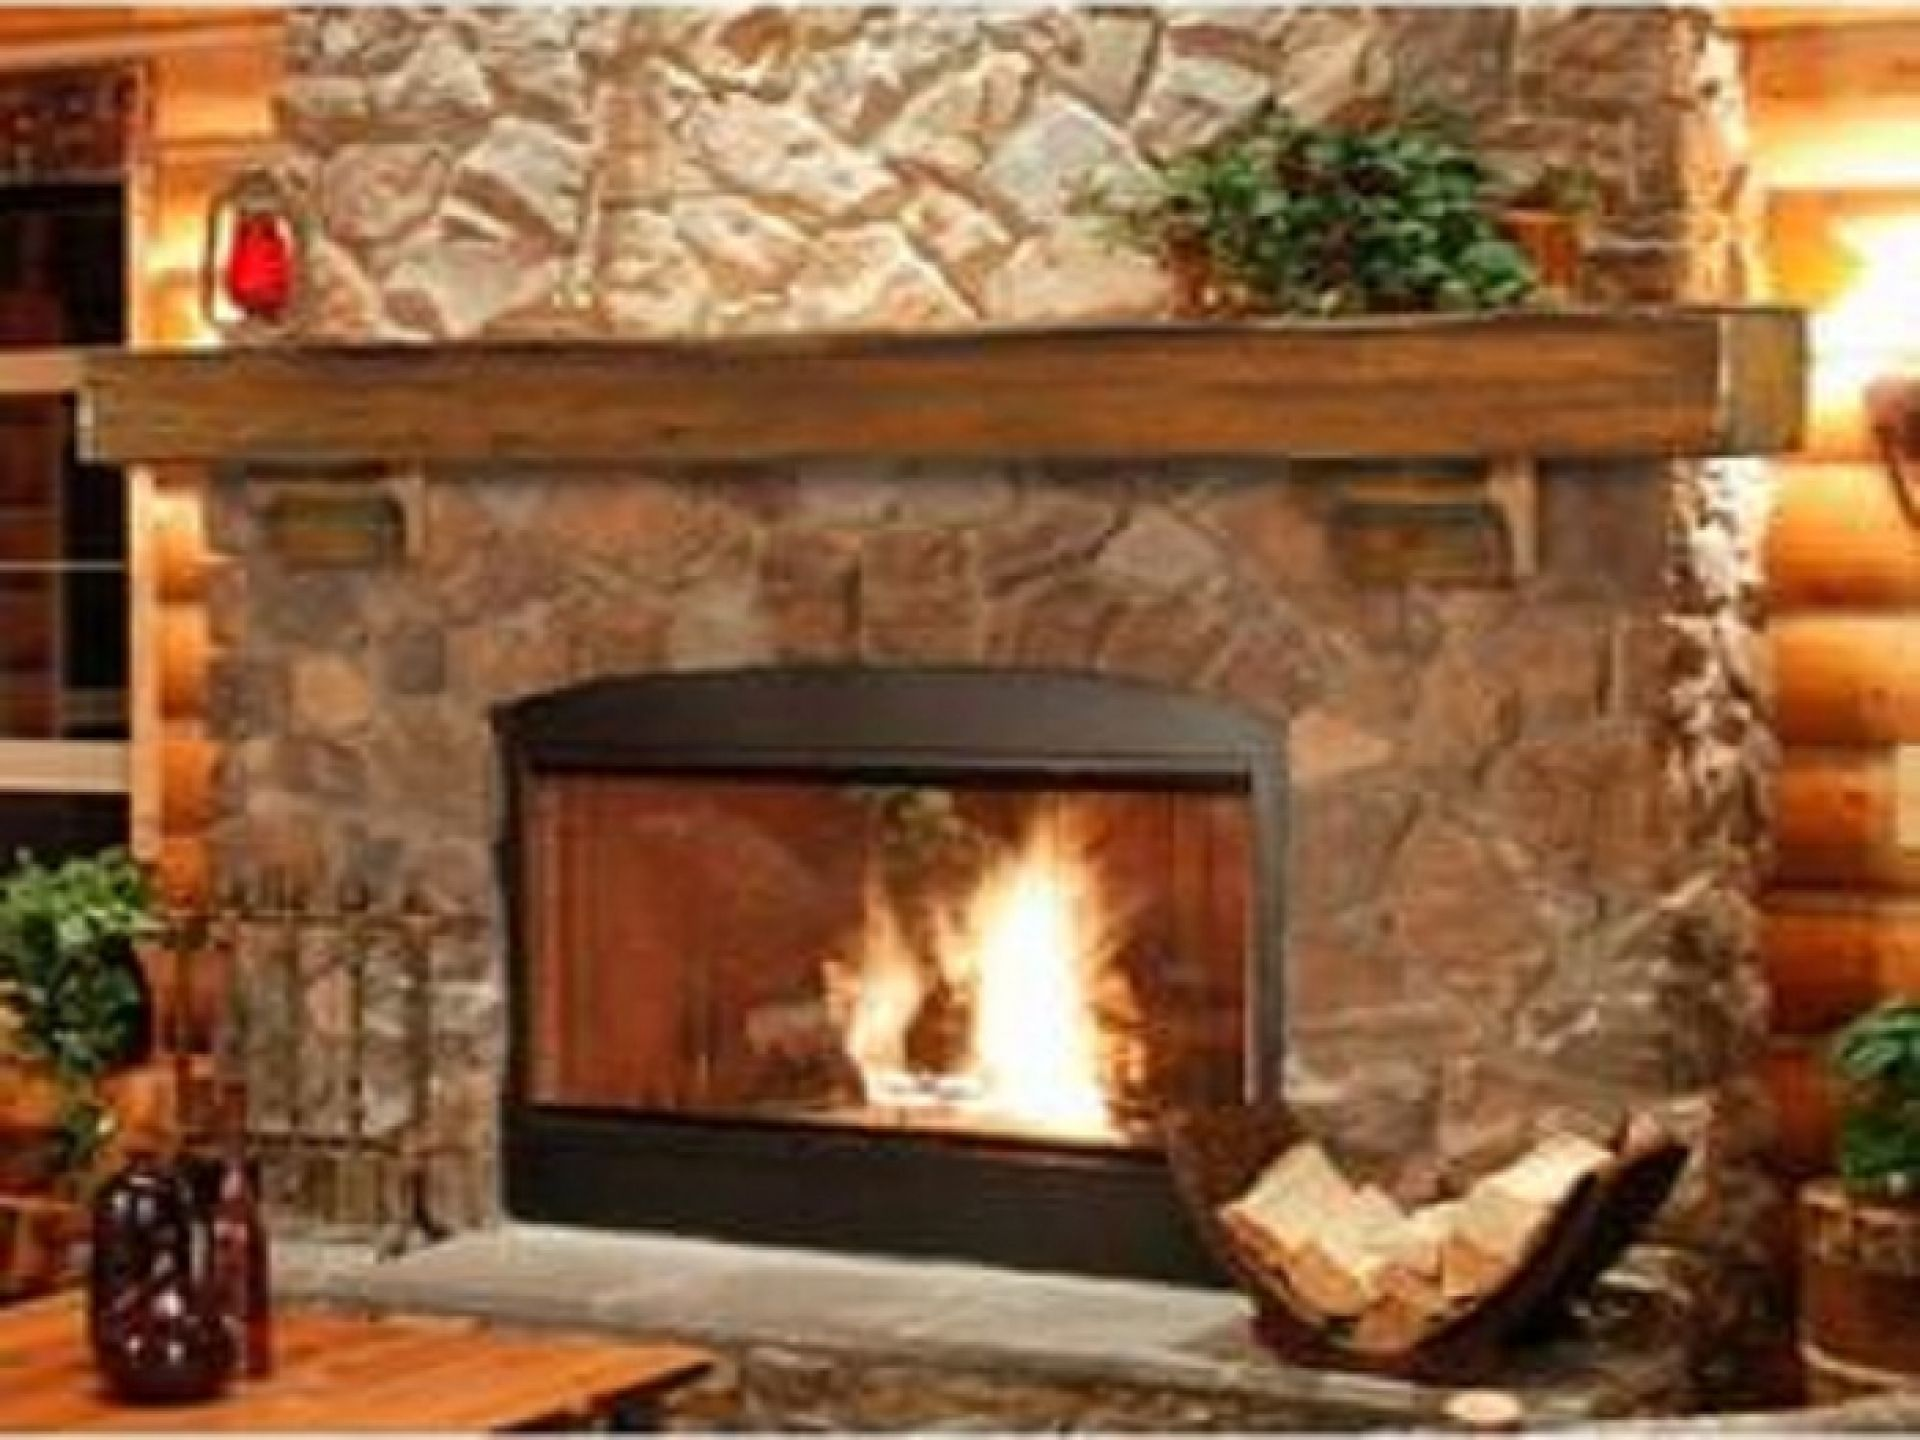 natural look teak wood natural polished floating fireplace mantle at stones wall decor in rustic living